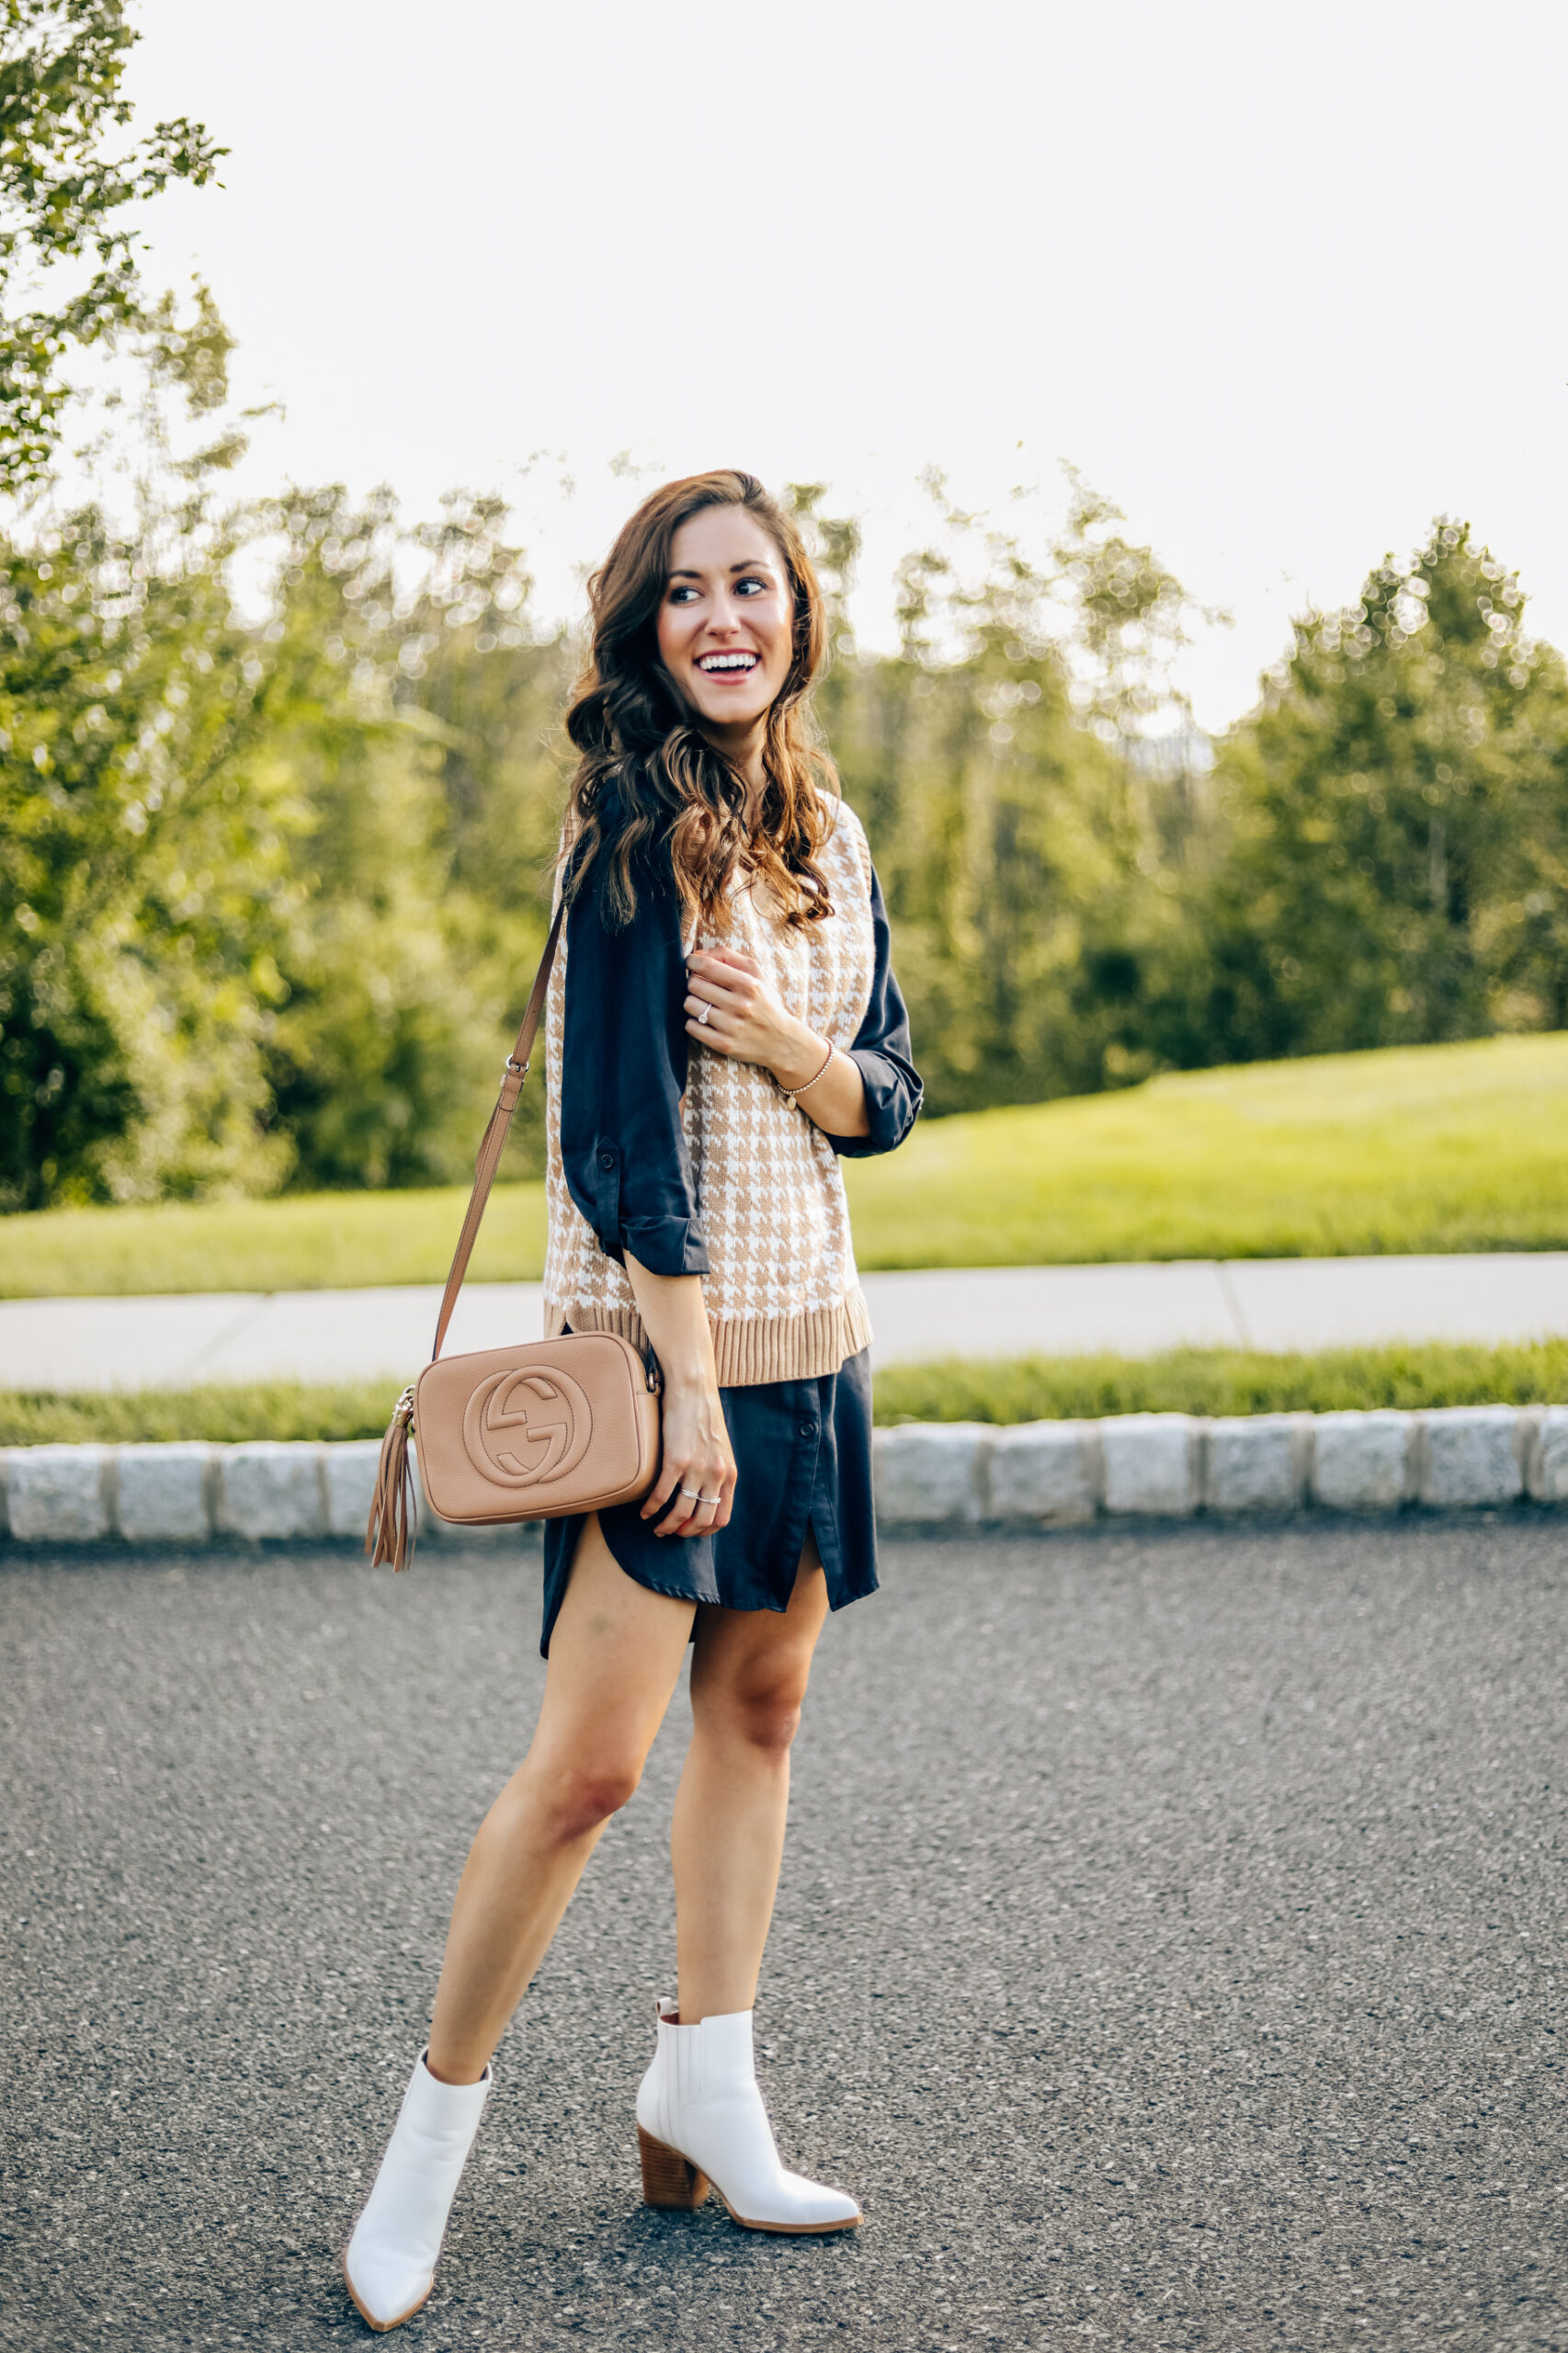 Herringbone sweater vest outfit - easy transitional look from summer to fall!